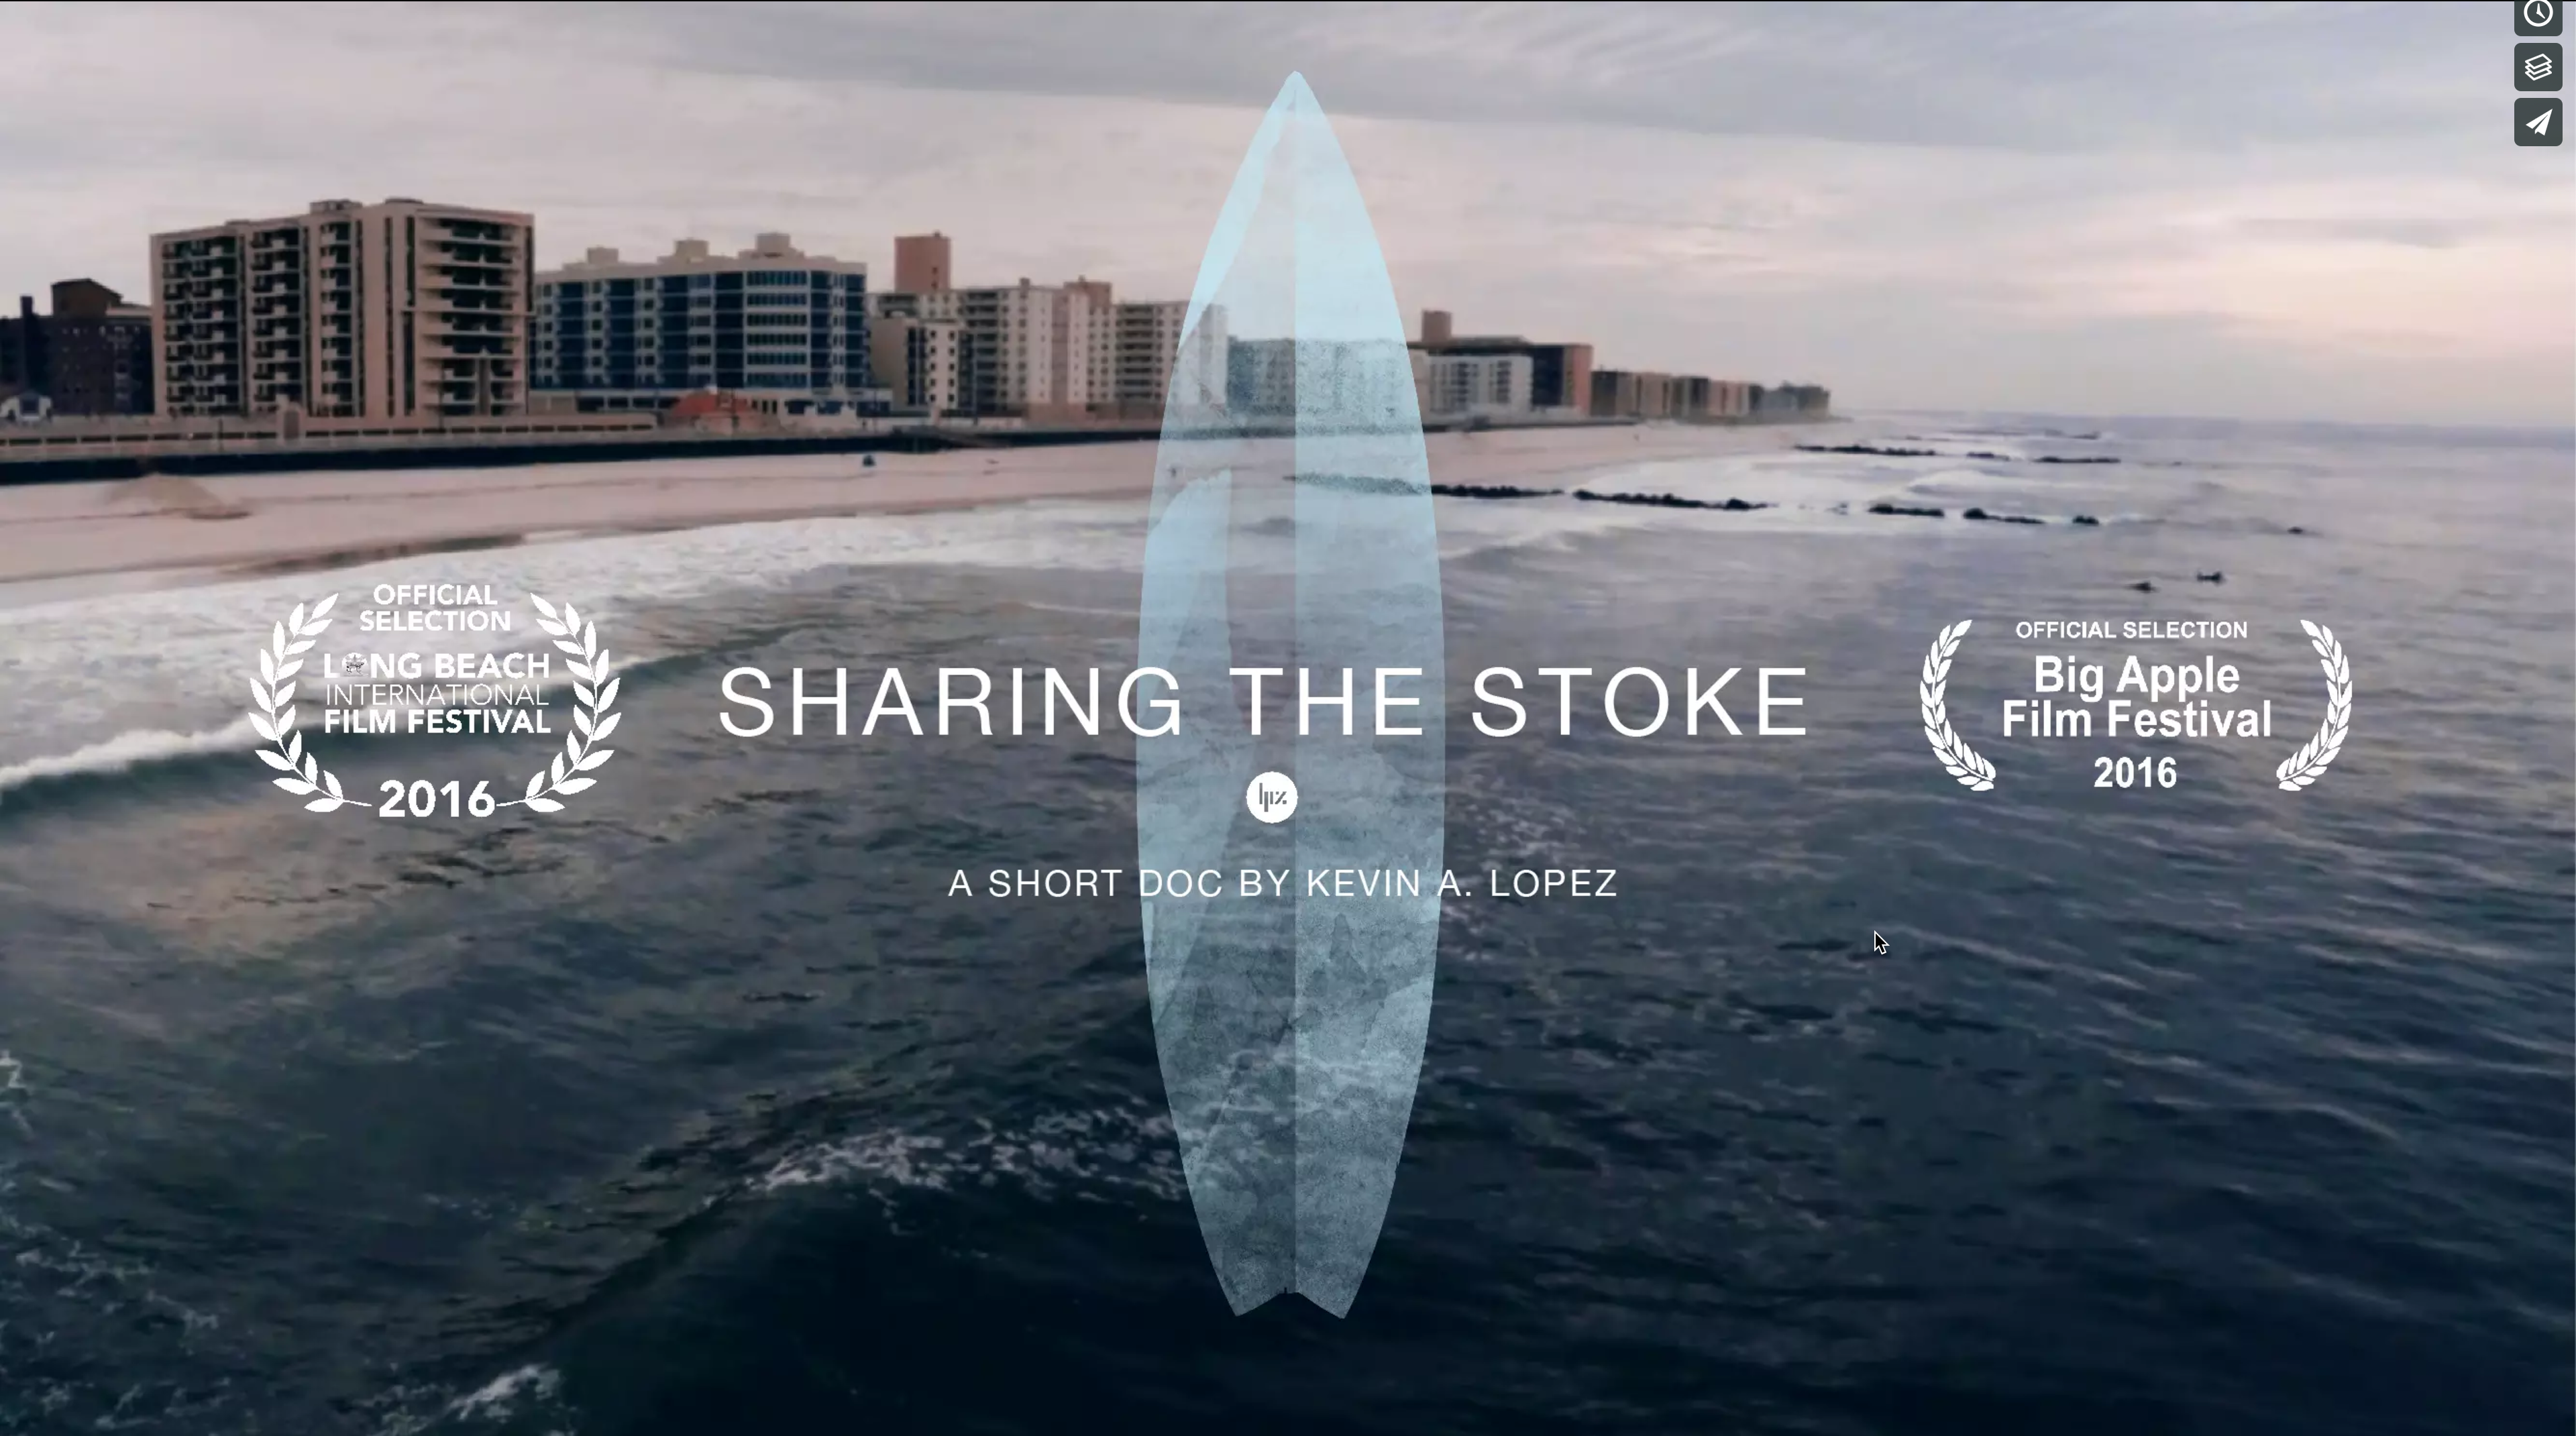 Sharing the Stoke